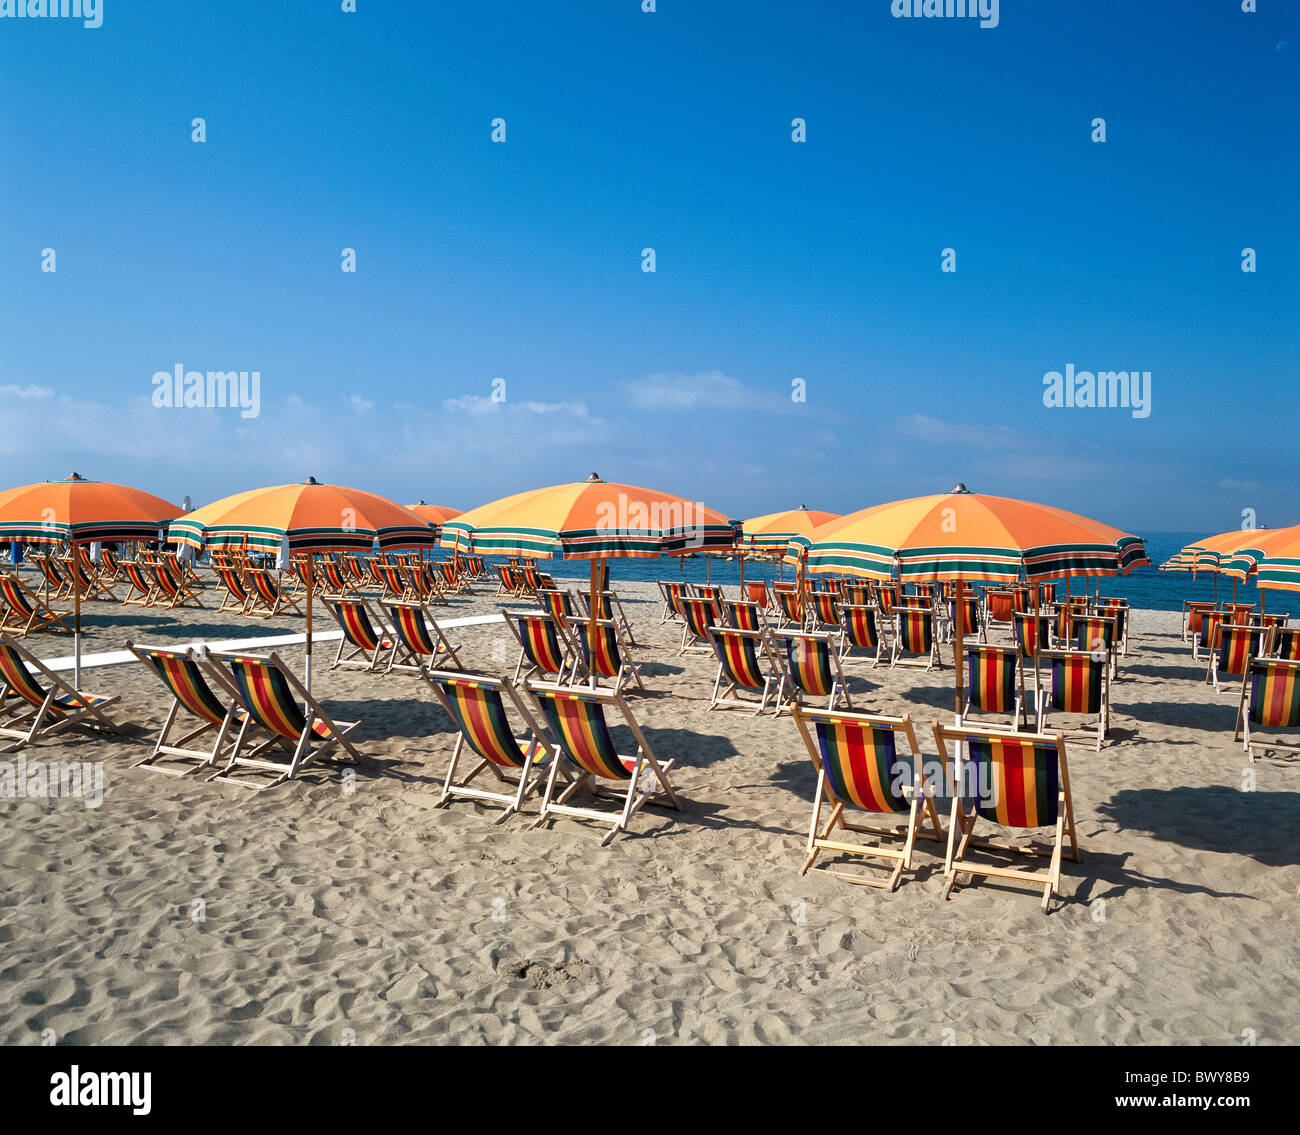 italien europa leere liegest hle orange reihen sonnenschirme am strand k ste meer strandurlaub. Black Bedroom Furniture Sets. Home Design Ideas